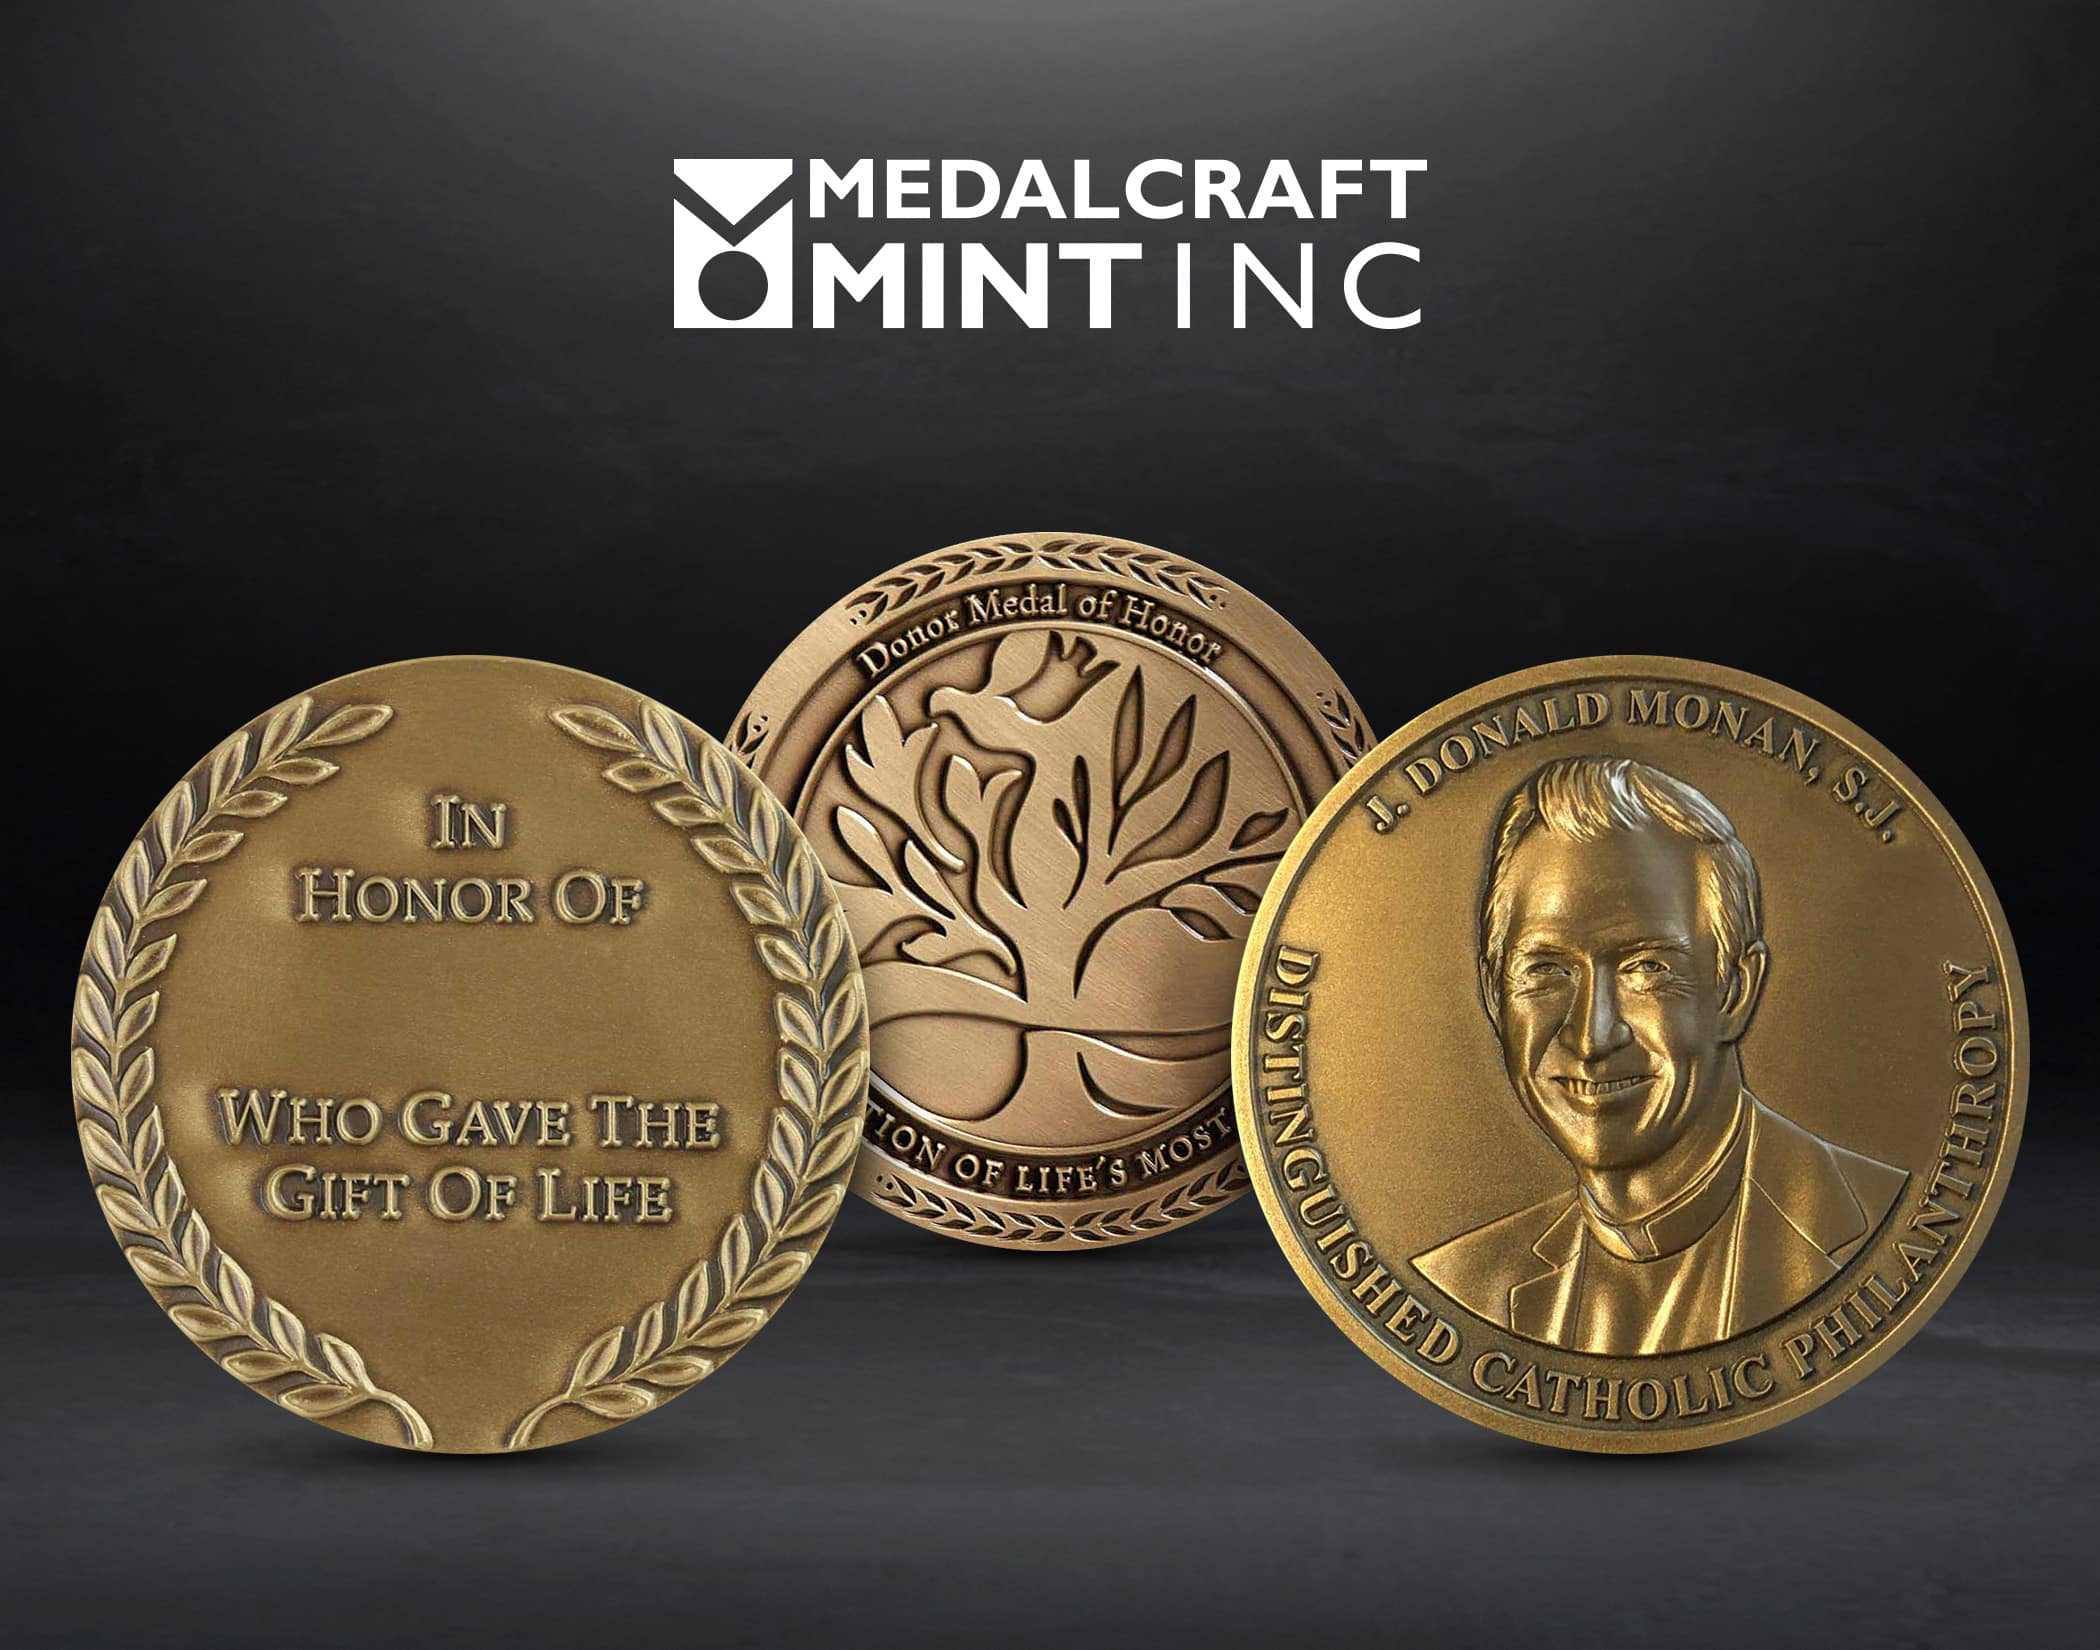 Medalcraft Mint donor network medals